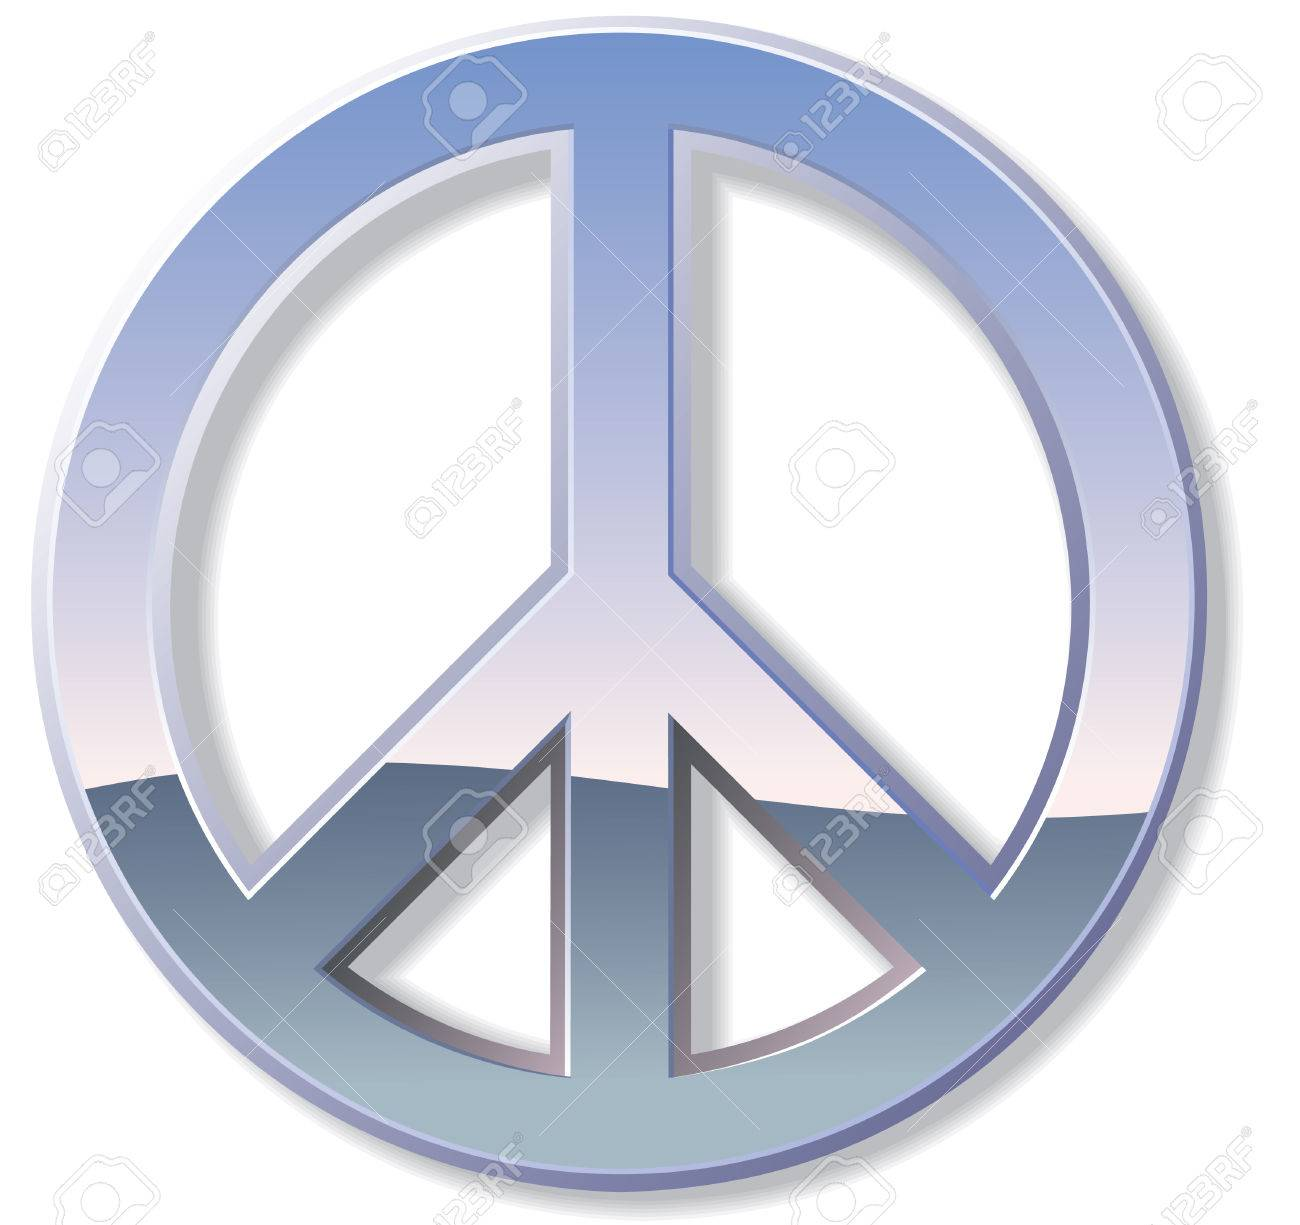 Metal or chrome peace sign with reflections Stock Vector - 7202115